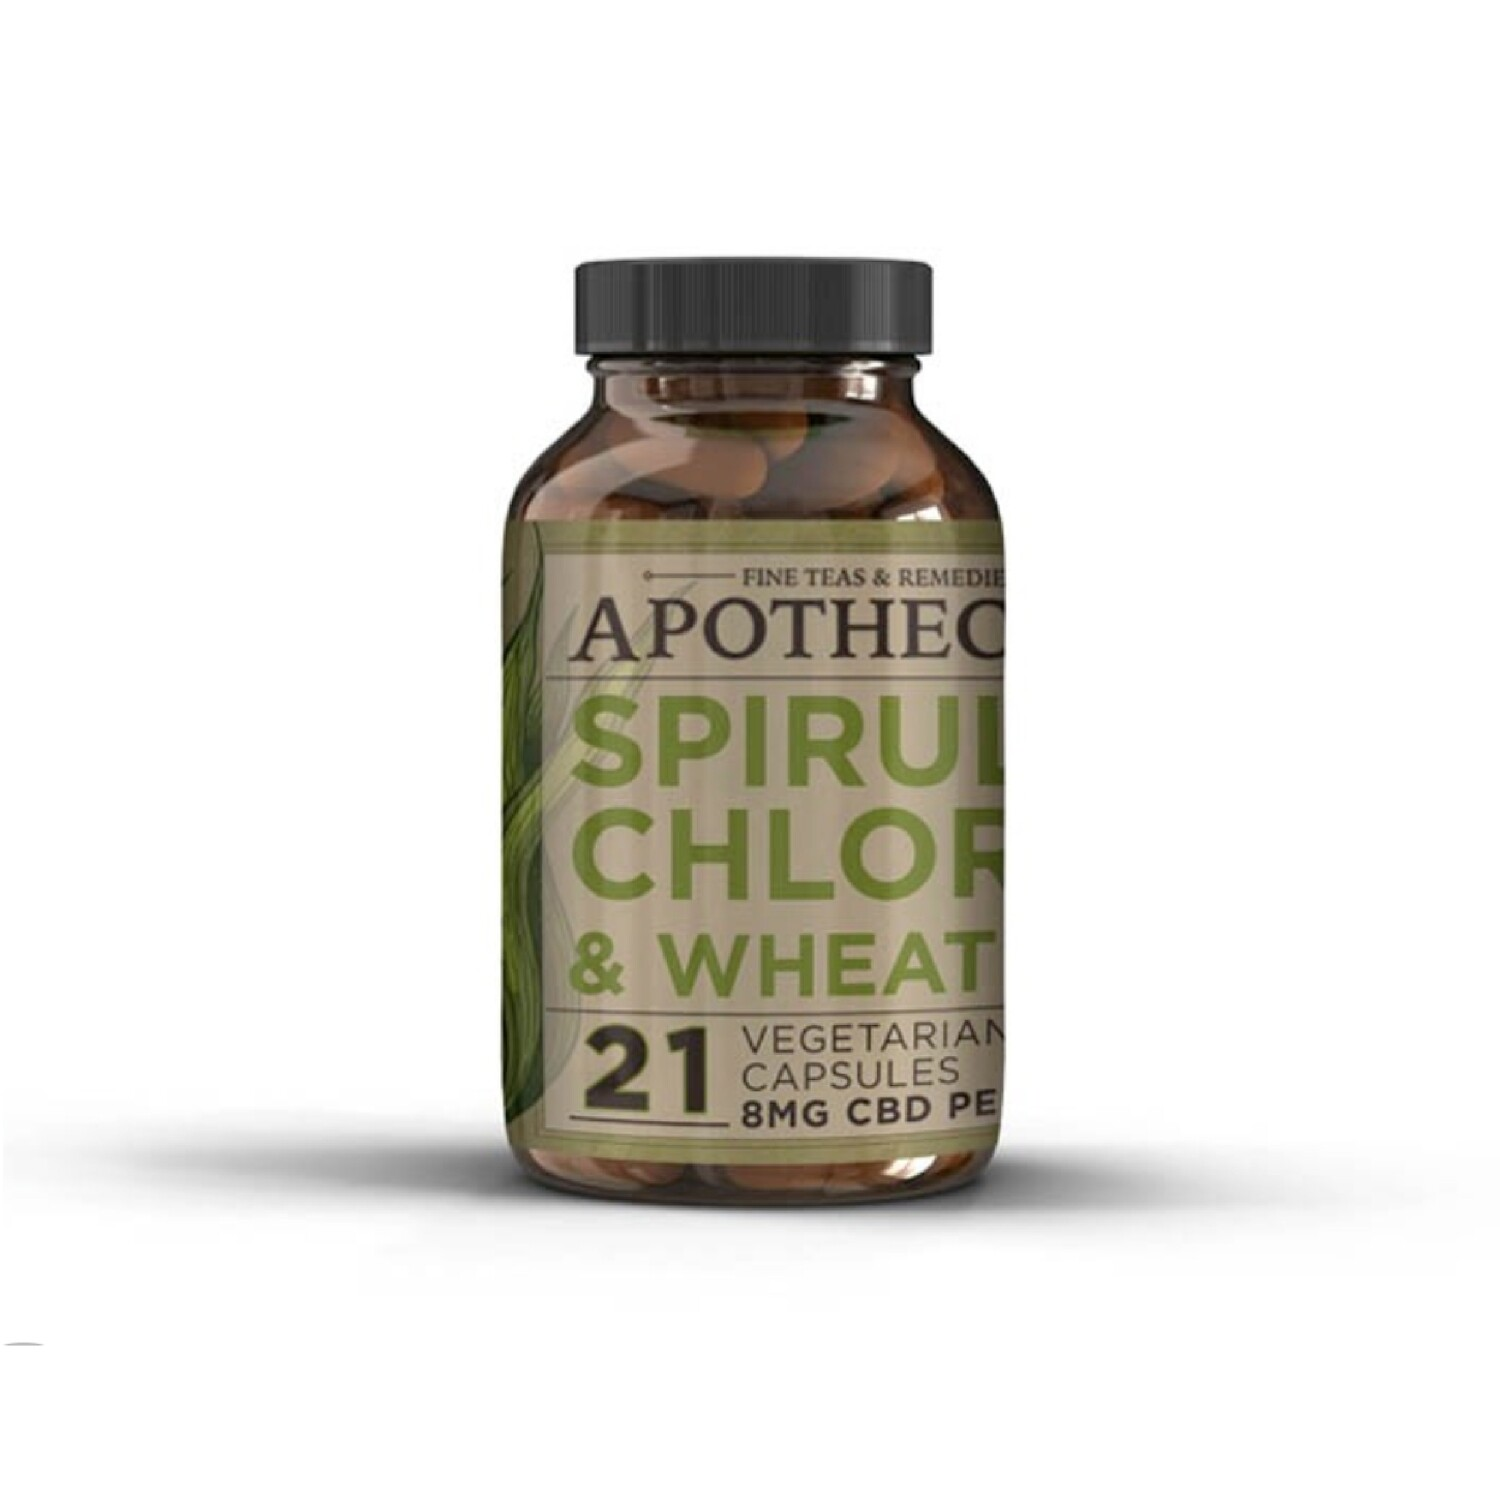 The Brothers Apothecary Capsules